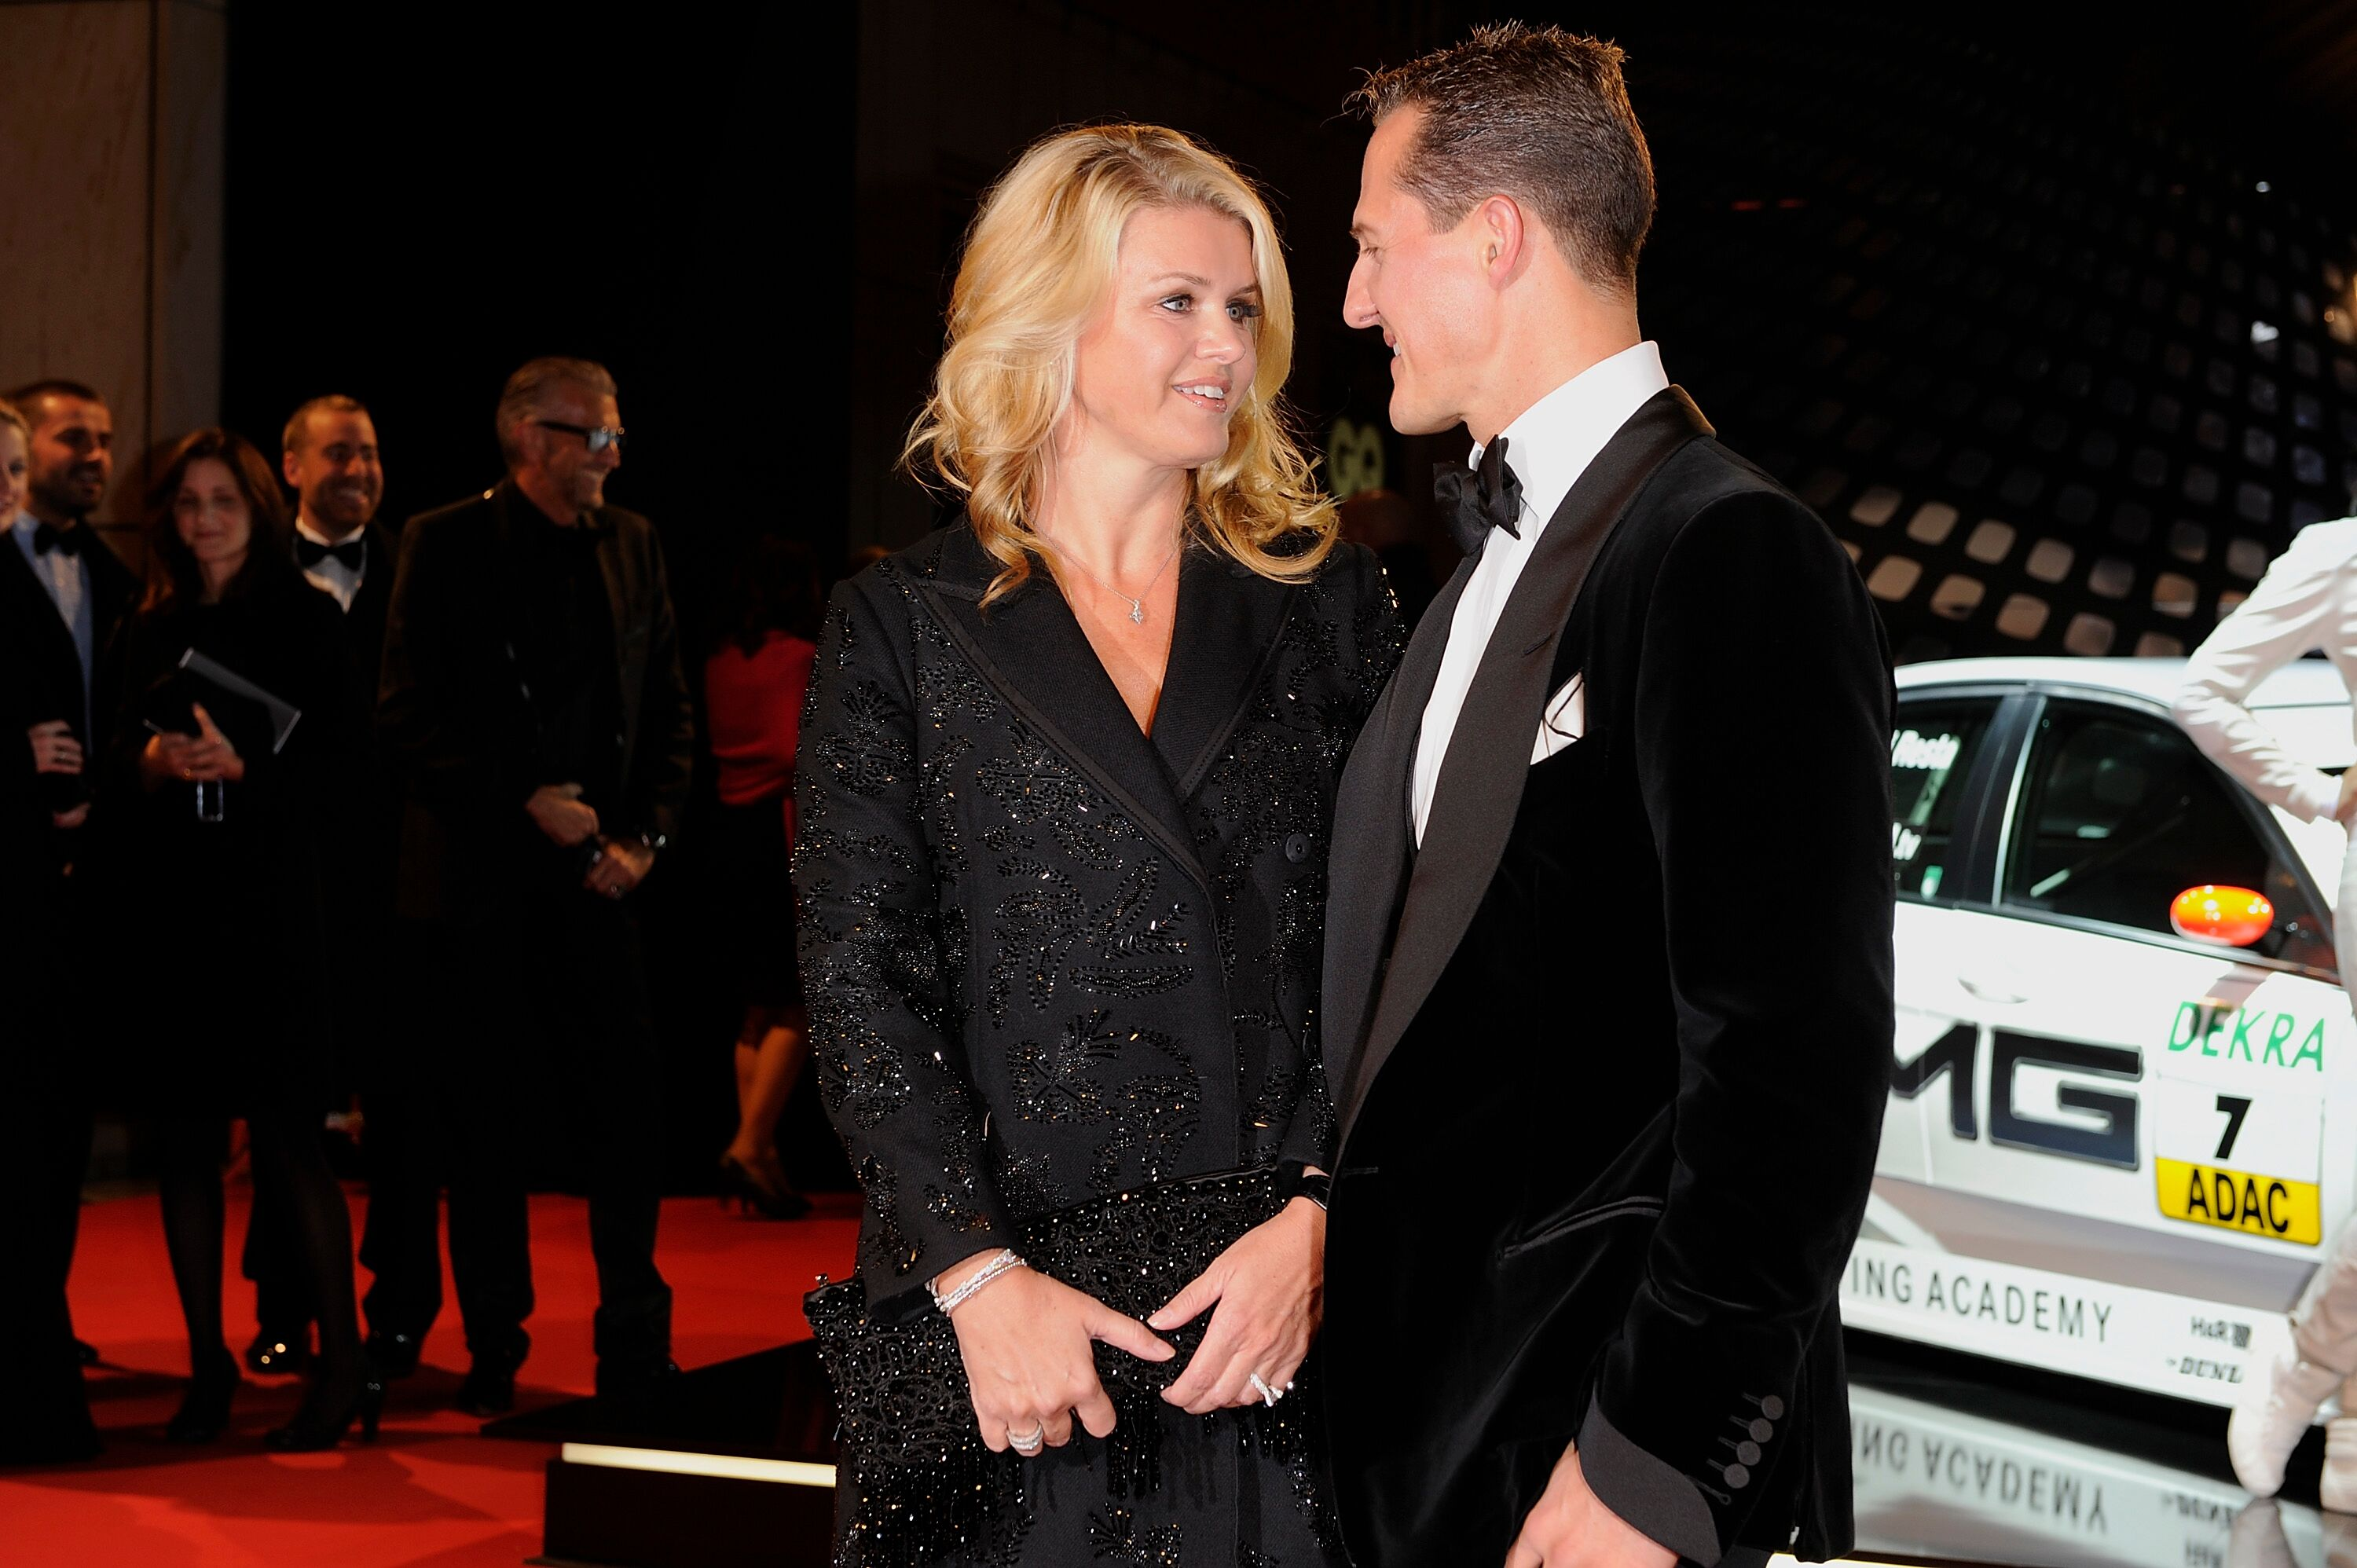 Michael Schumacher et son épouse Corinna Schumacher assistent à la cérémonie de remise des prix GQ Men of the Year 2010 au Komische Oper à Berlin. | Photo : Getty Images